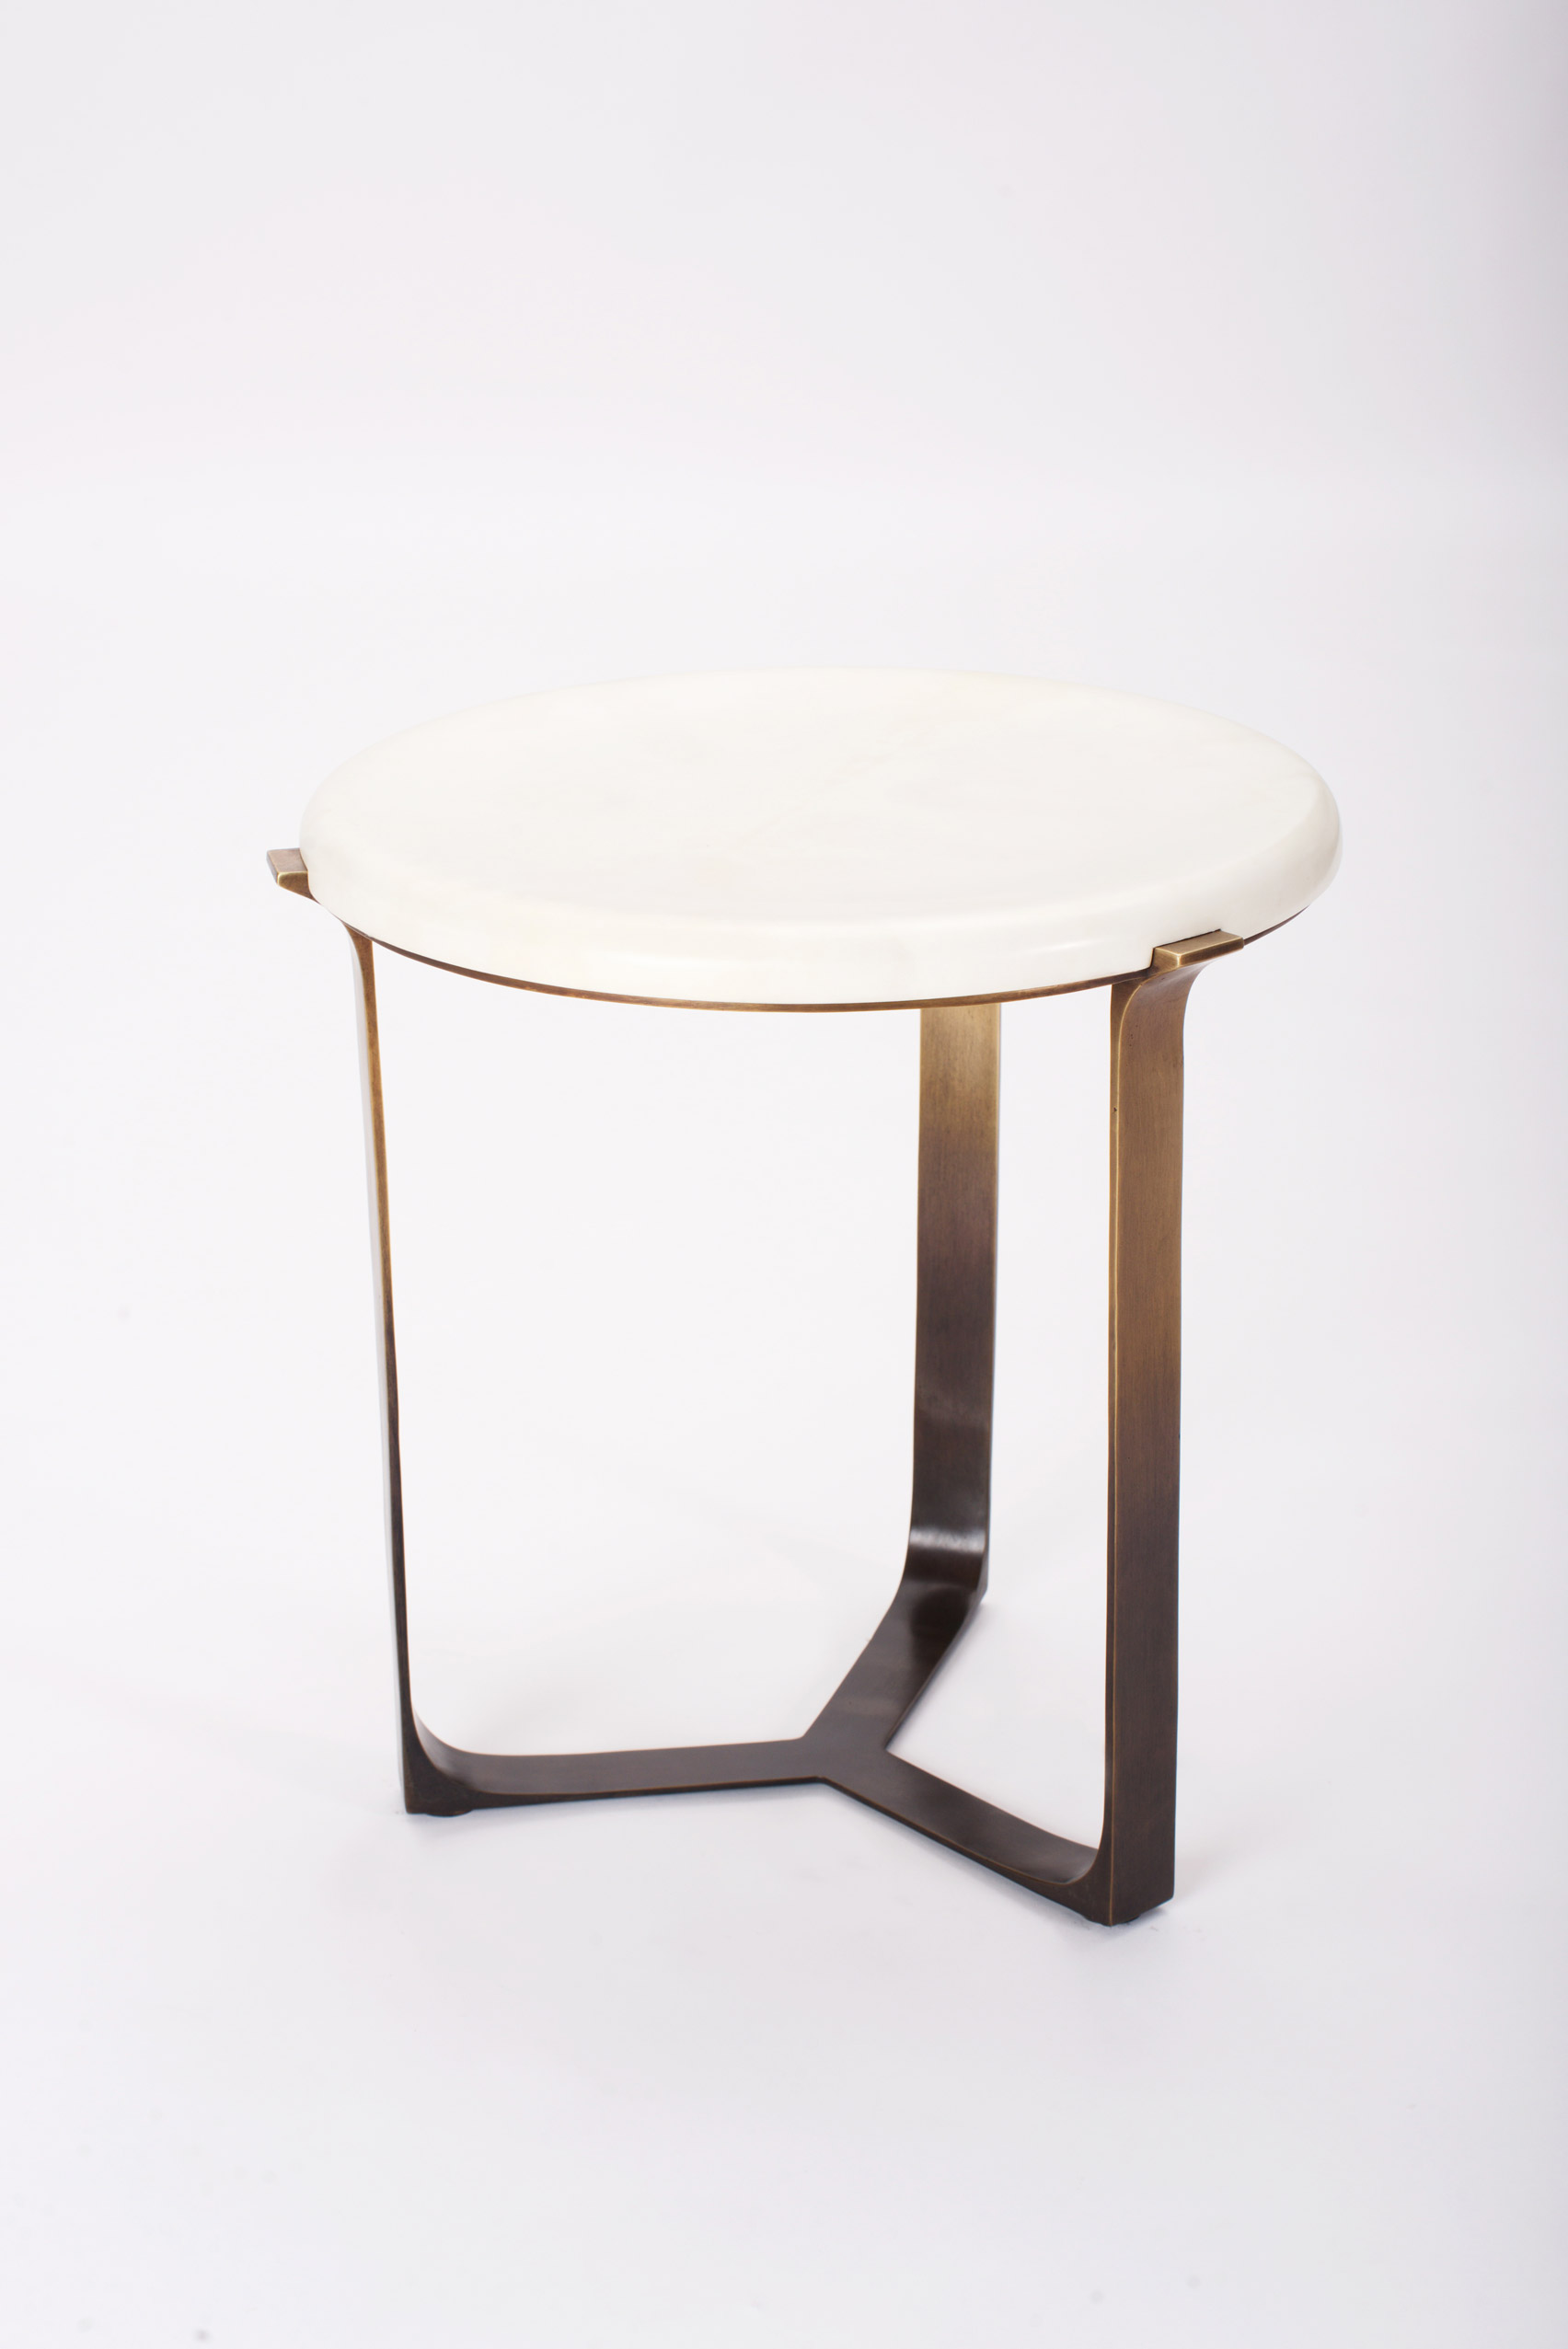 Round Arch side table by Elan Atelier